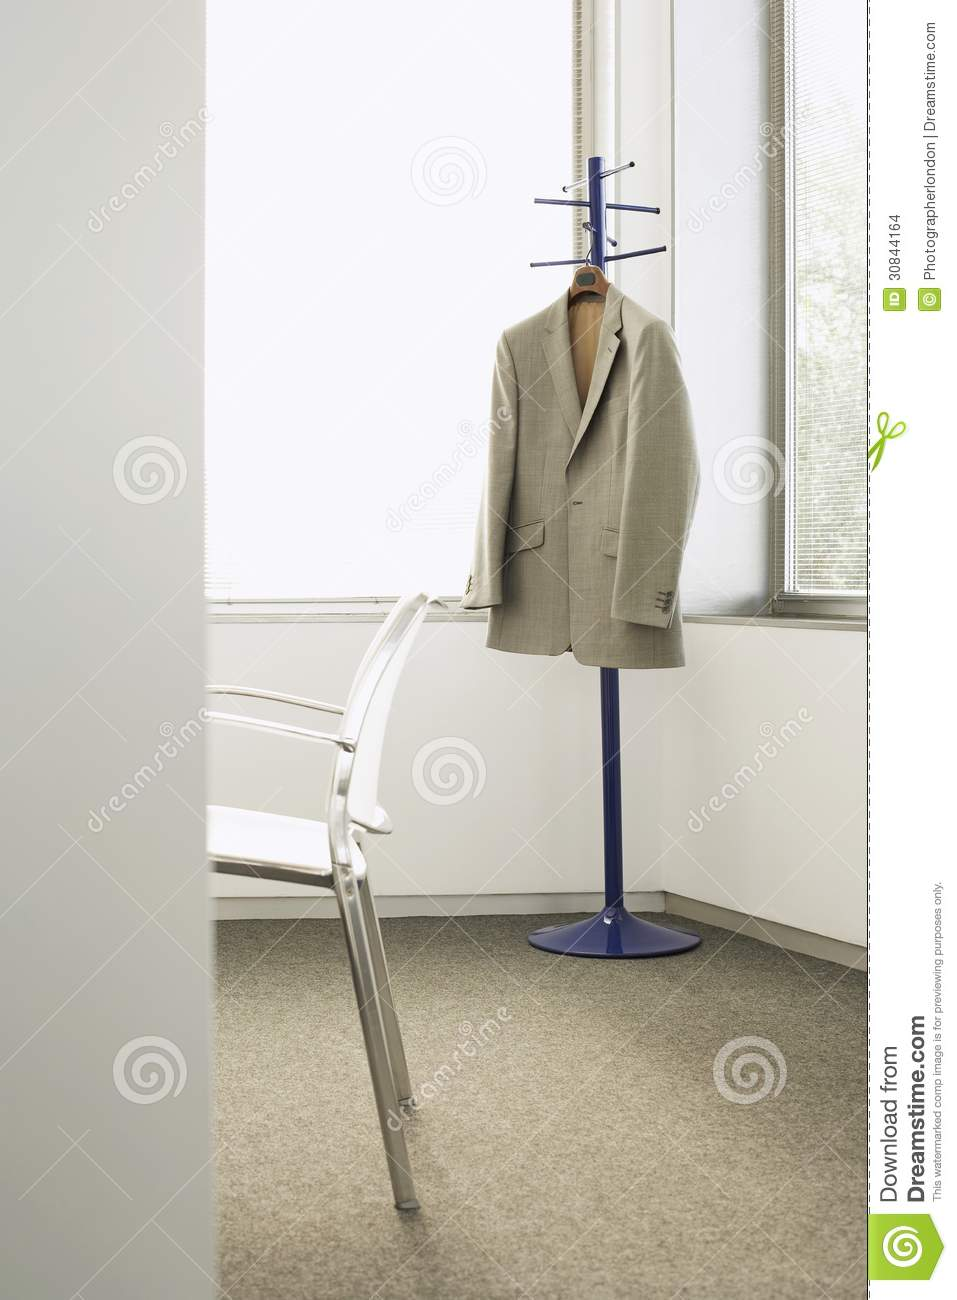 Suit Jacket On Coat Stand In Corner Of Office Stock Photo ...